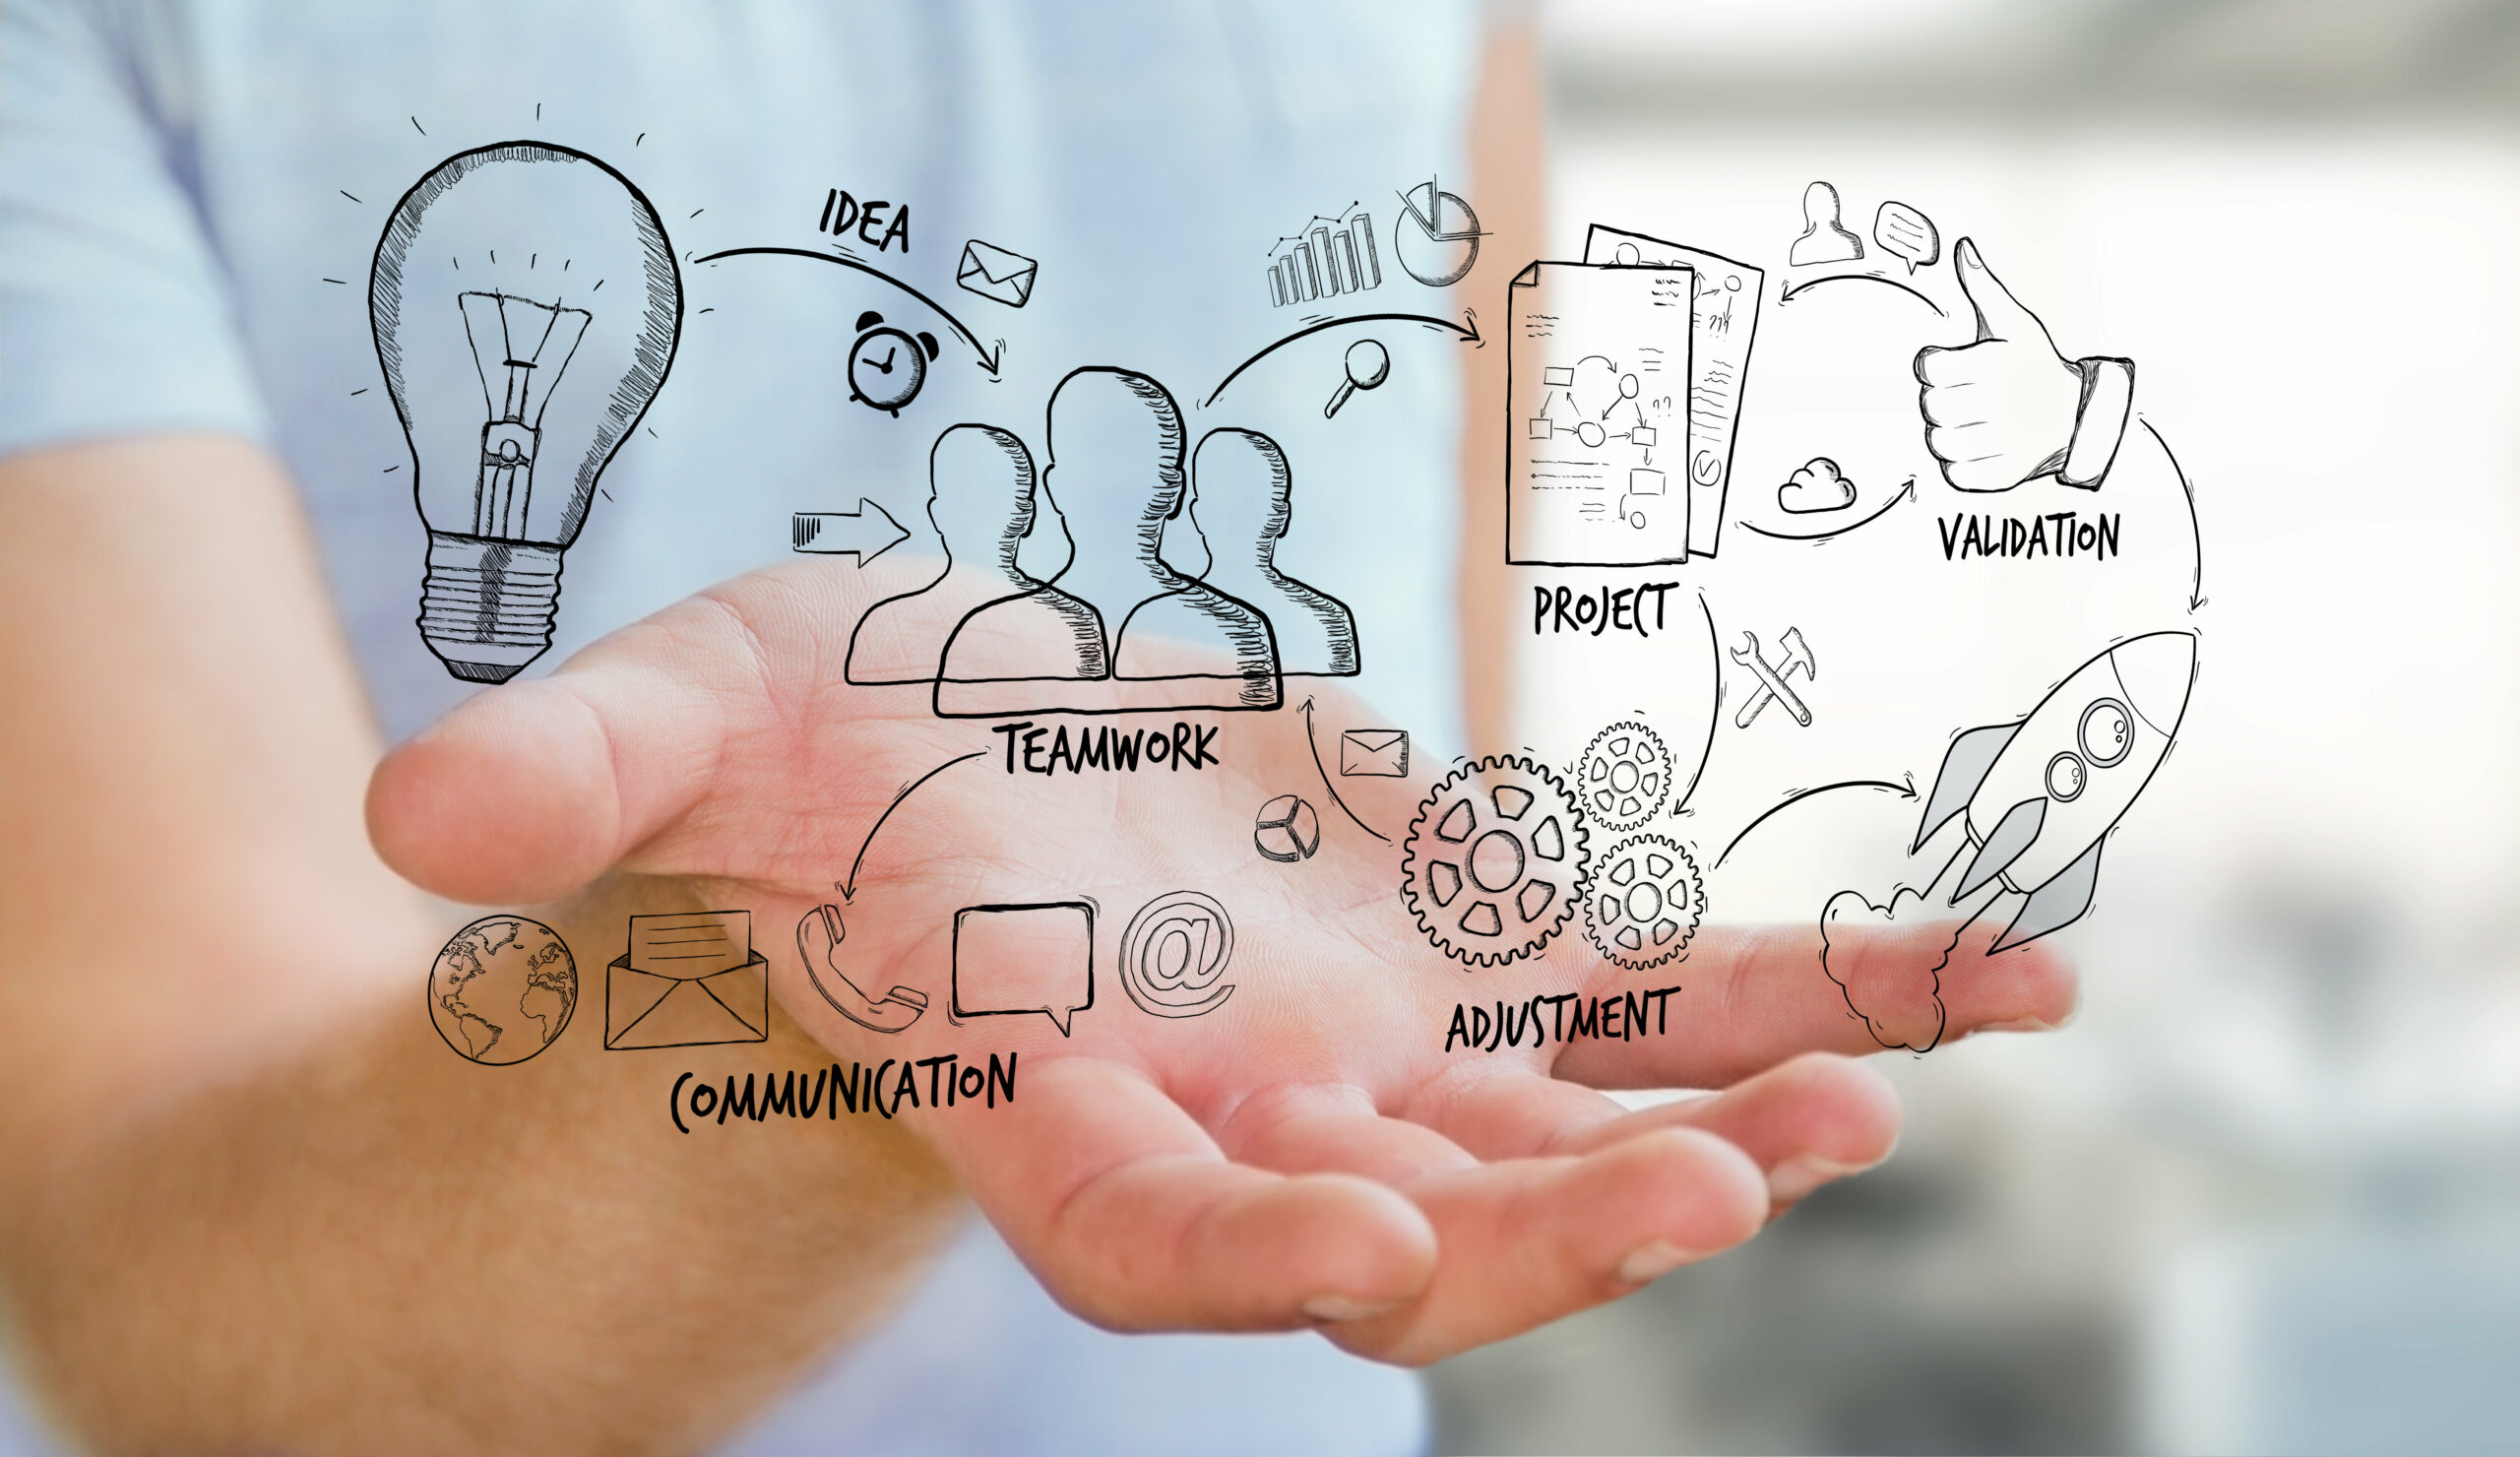 Validating business idea for startups